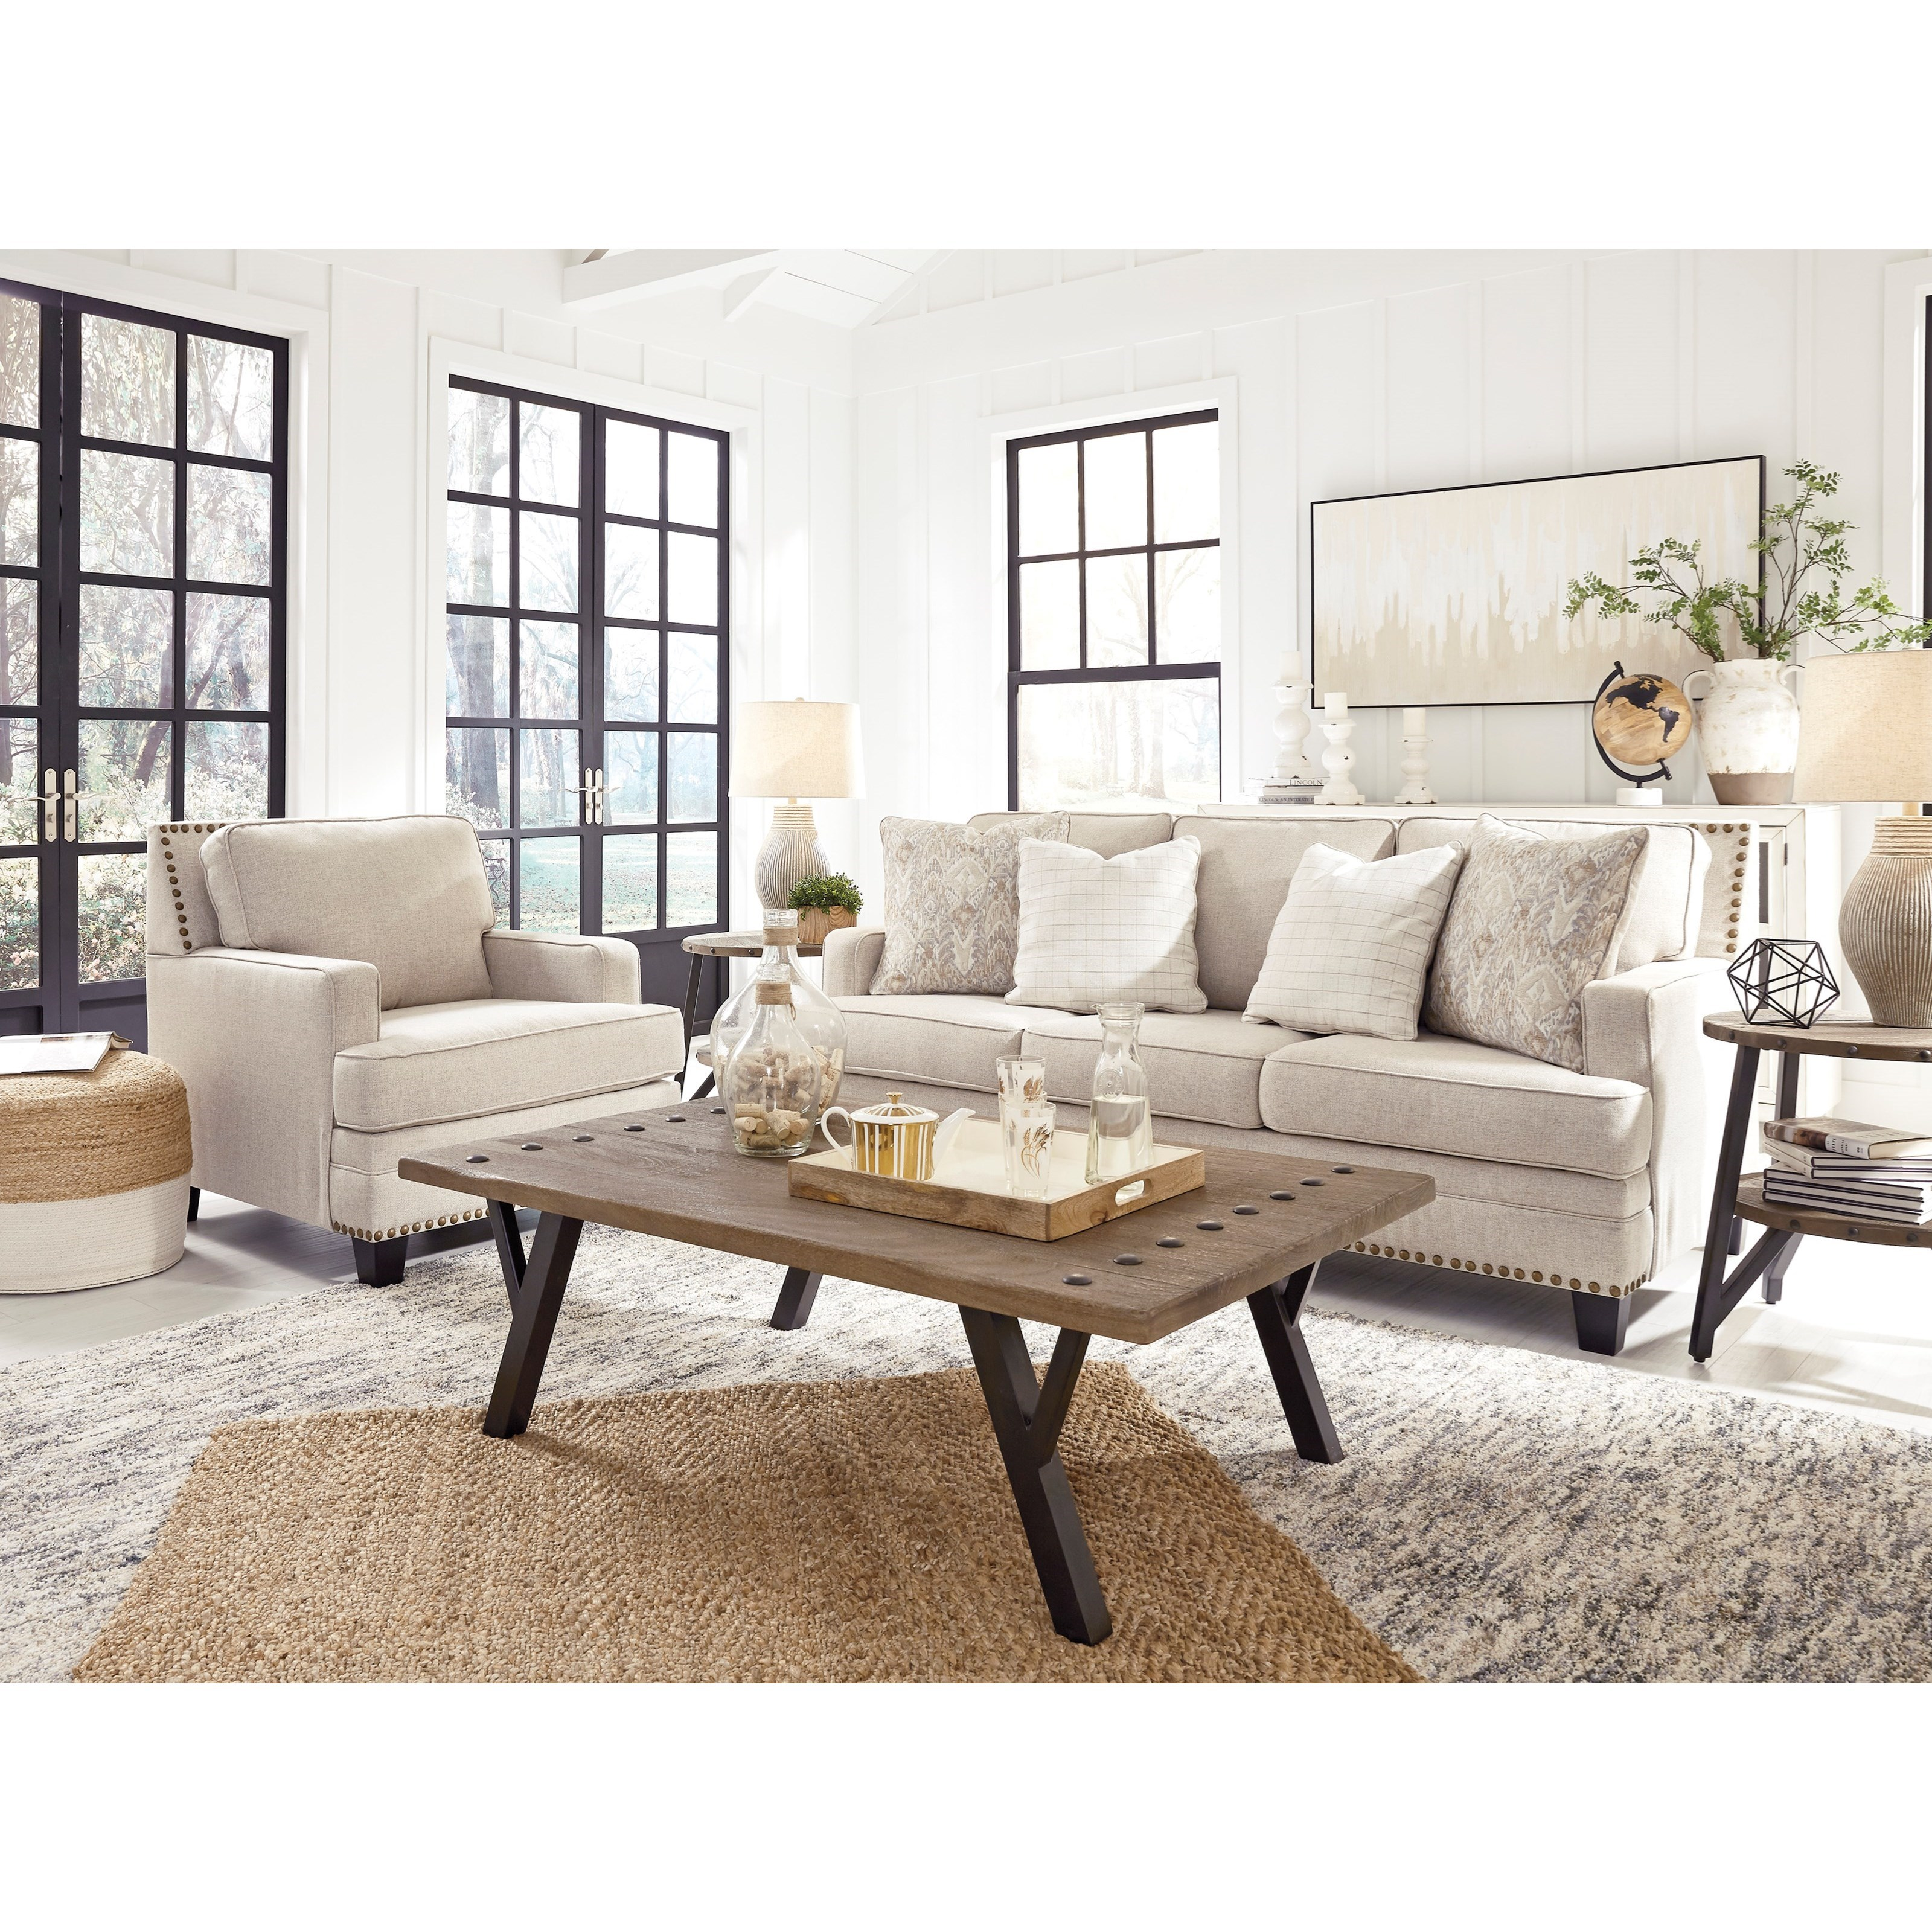 Claredon  Living Room Group by Benchcraft at Standard Furniture